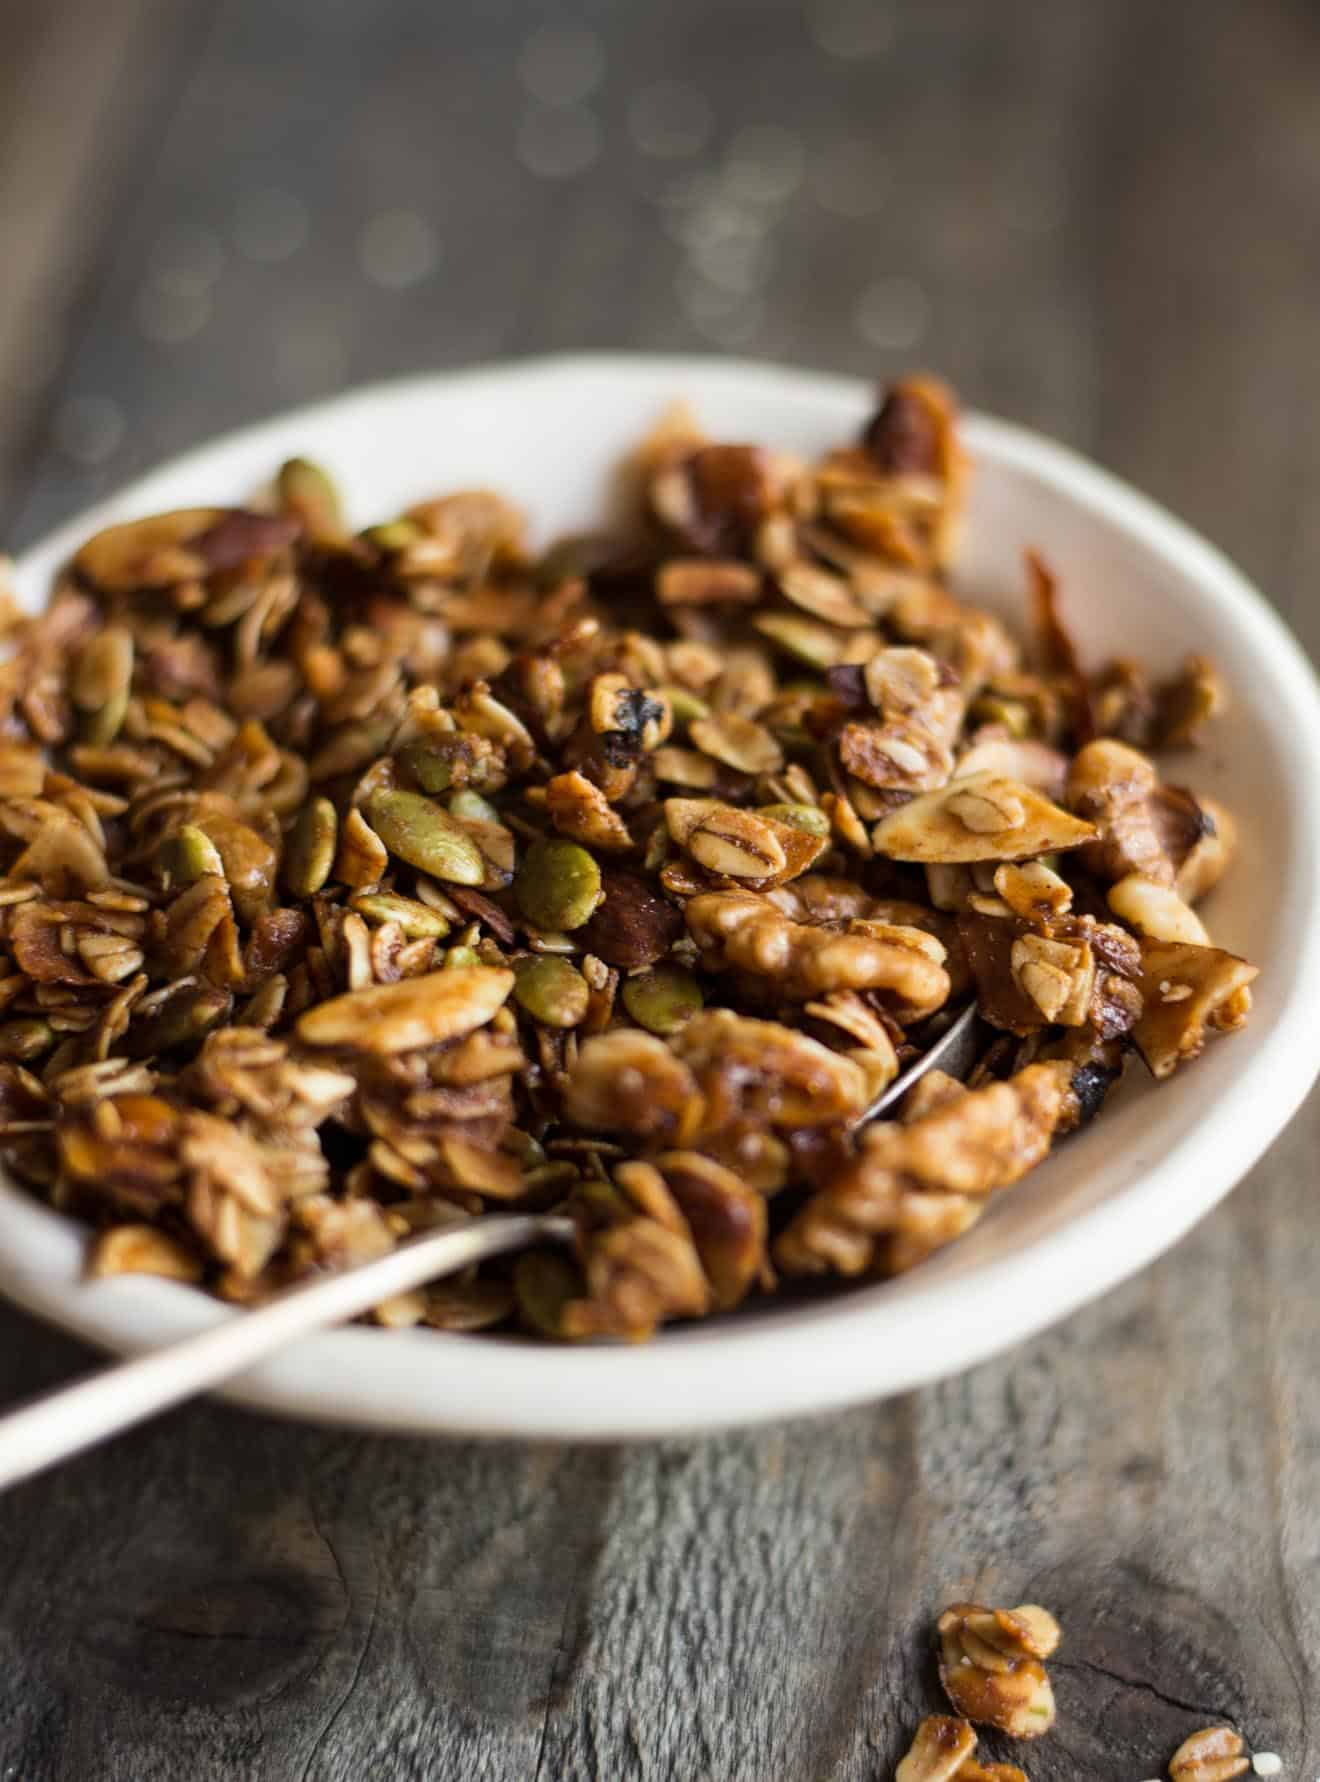 Easy Healthy Gluten-Free Granola Recipe with Oats and Honey - gluten free